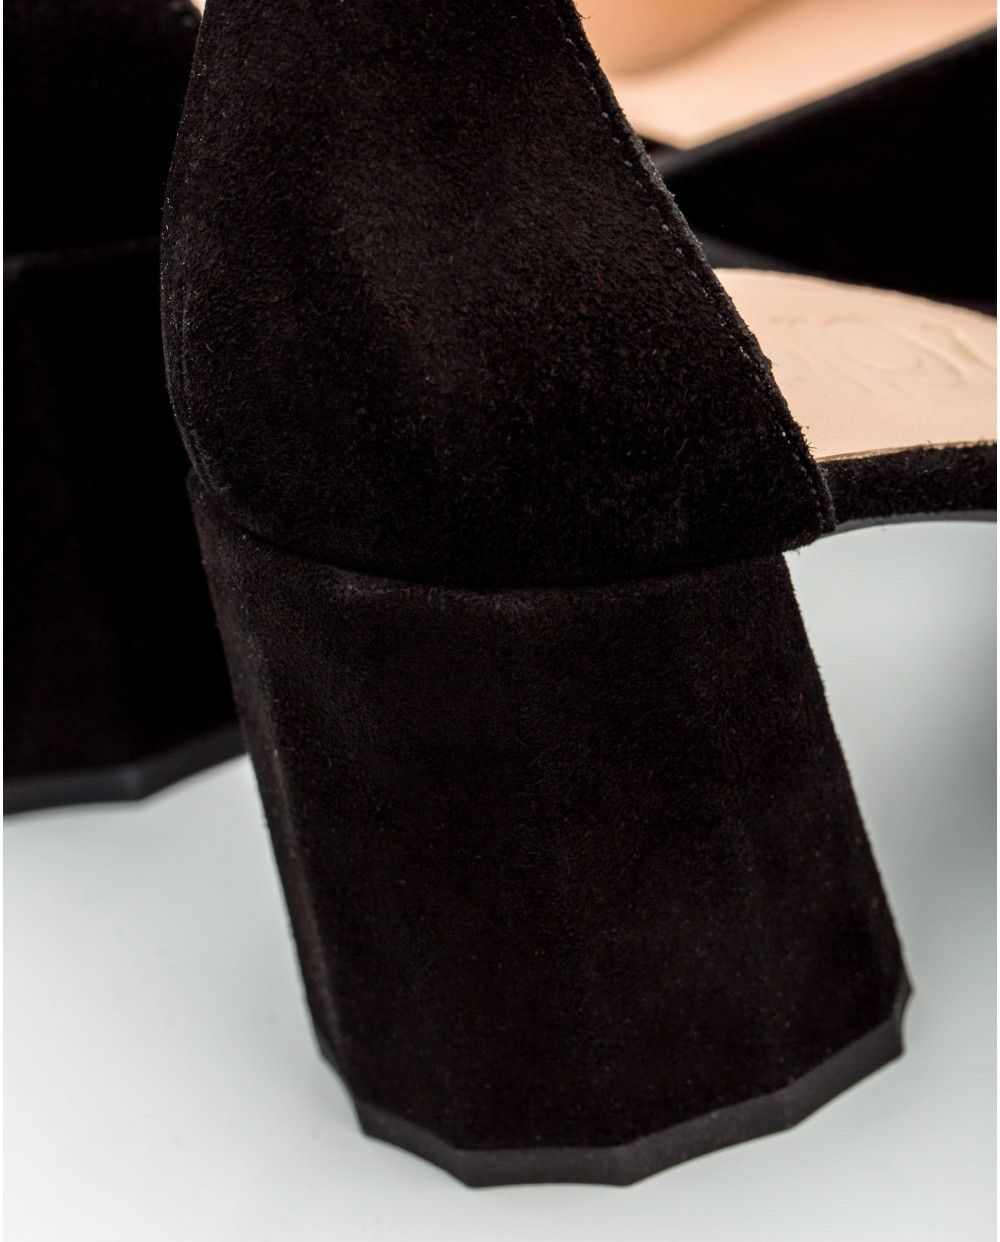 Wonders-Women-Backless high heeled shoe